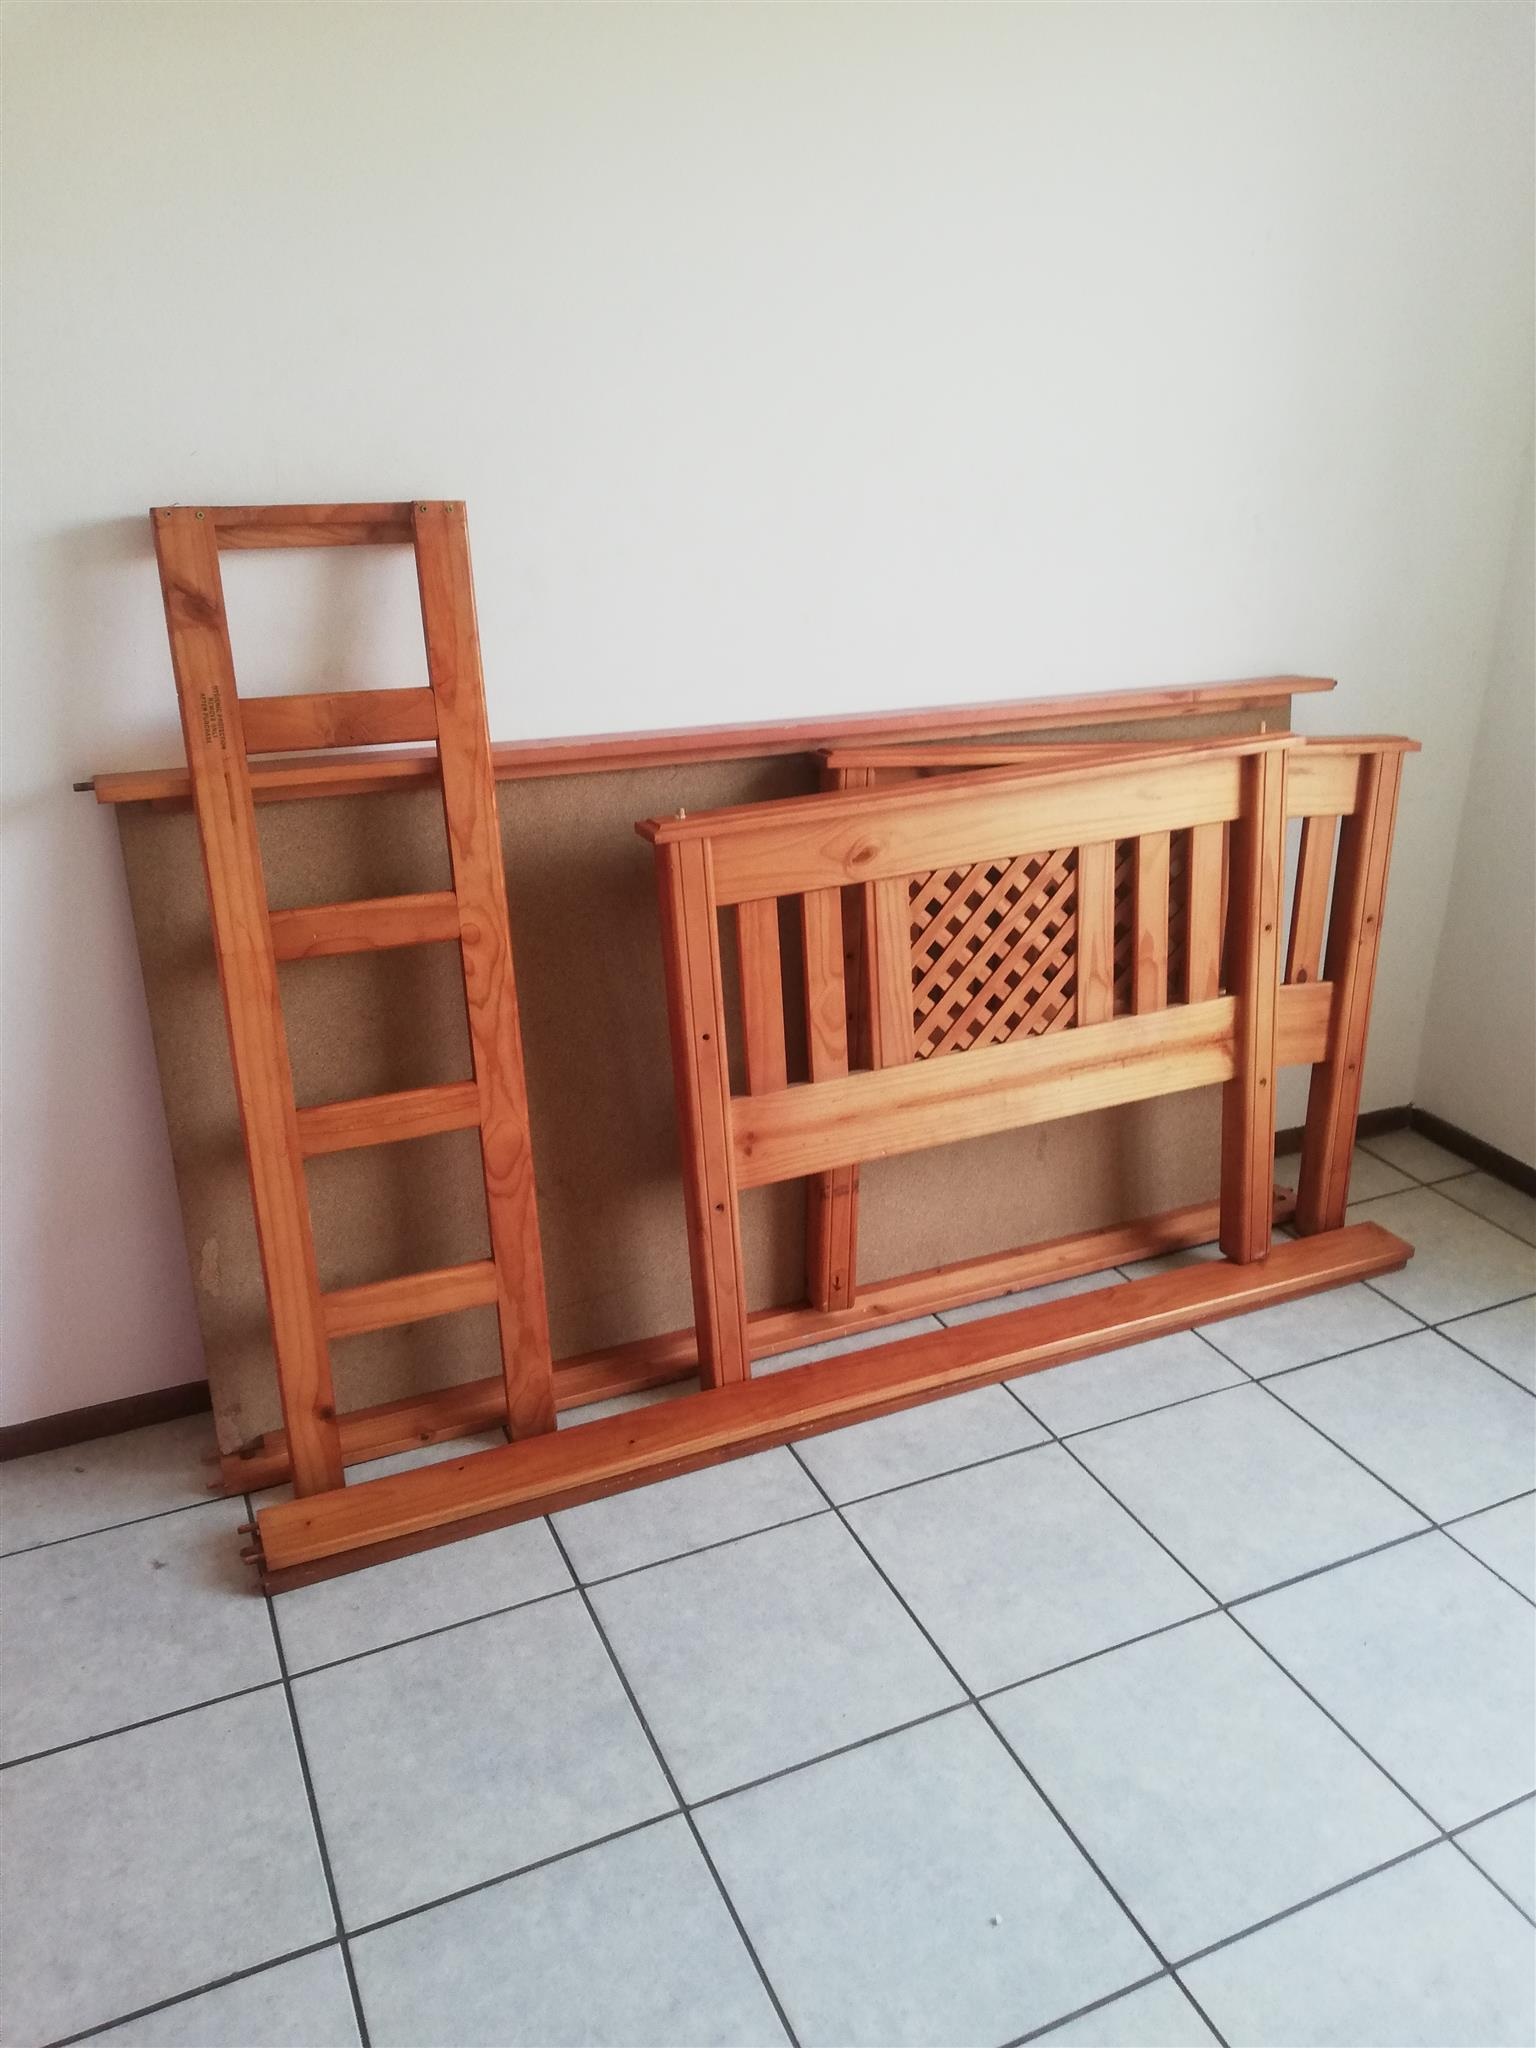 Selling my double bunk and other stuff for R2000